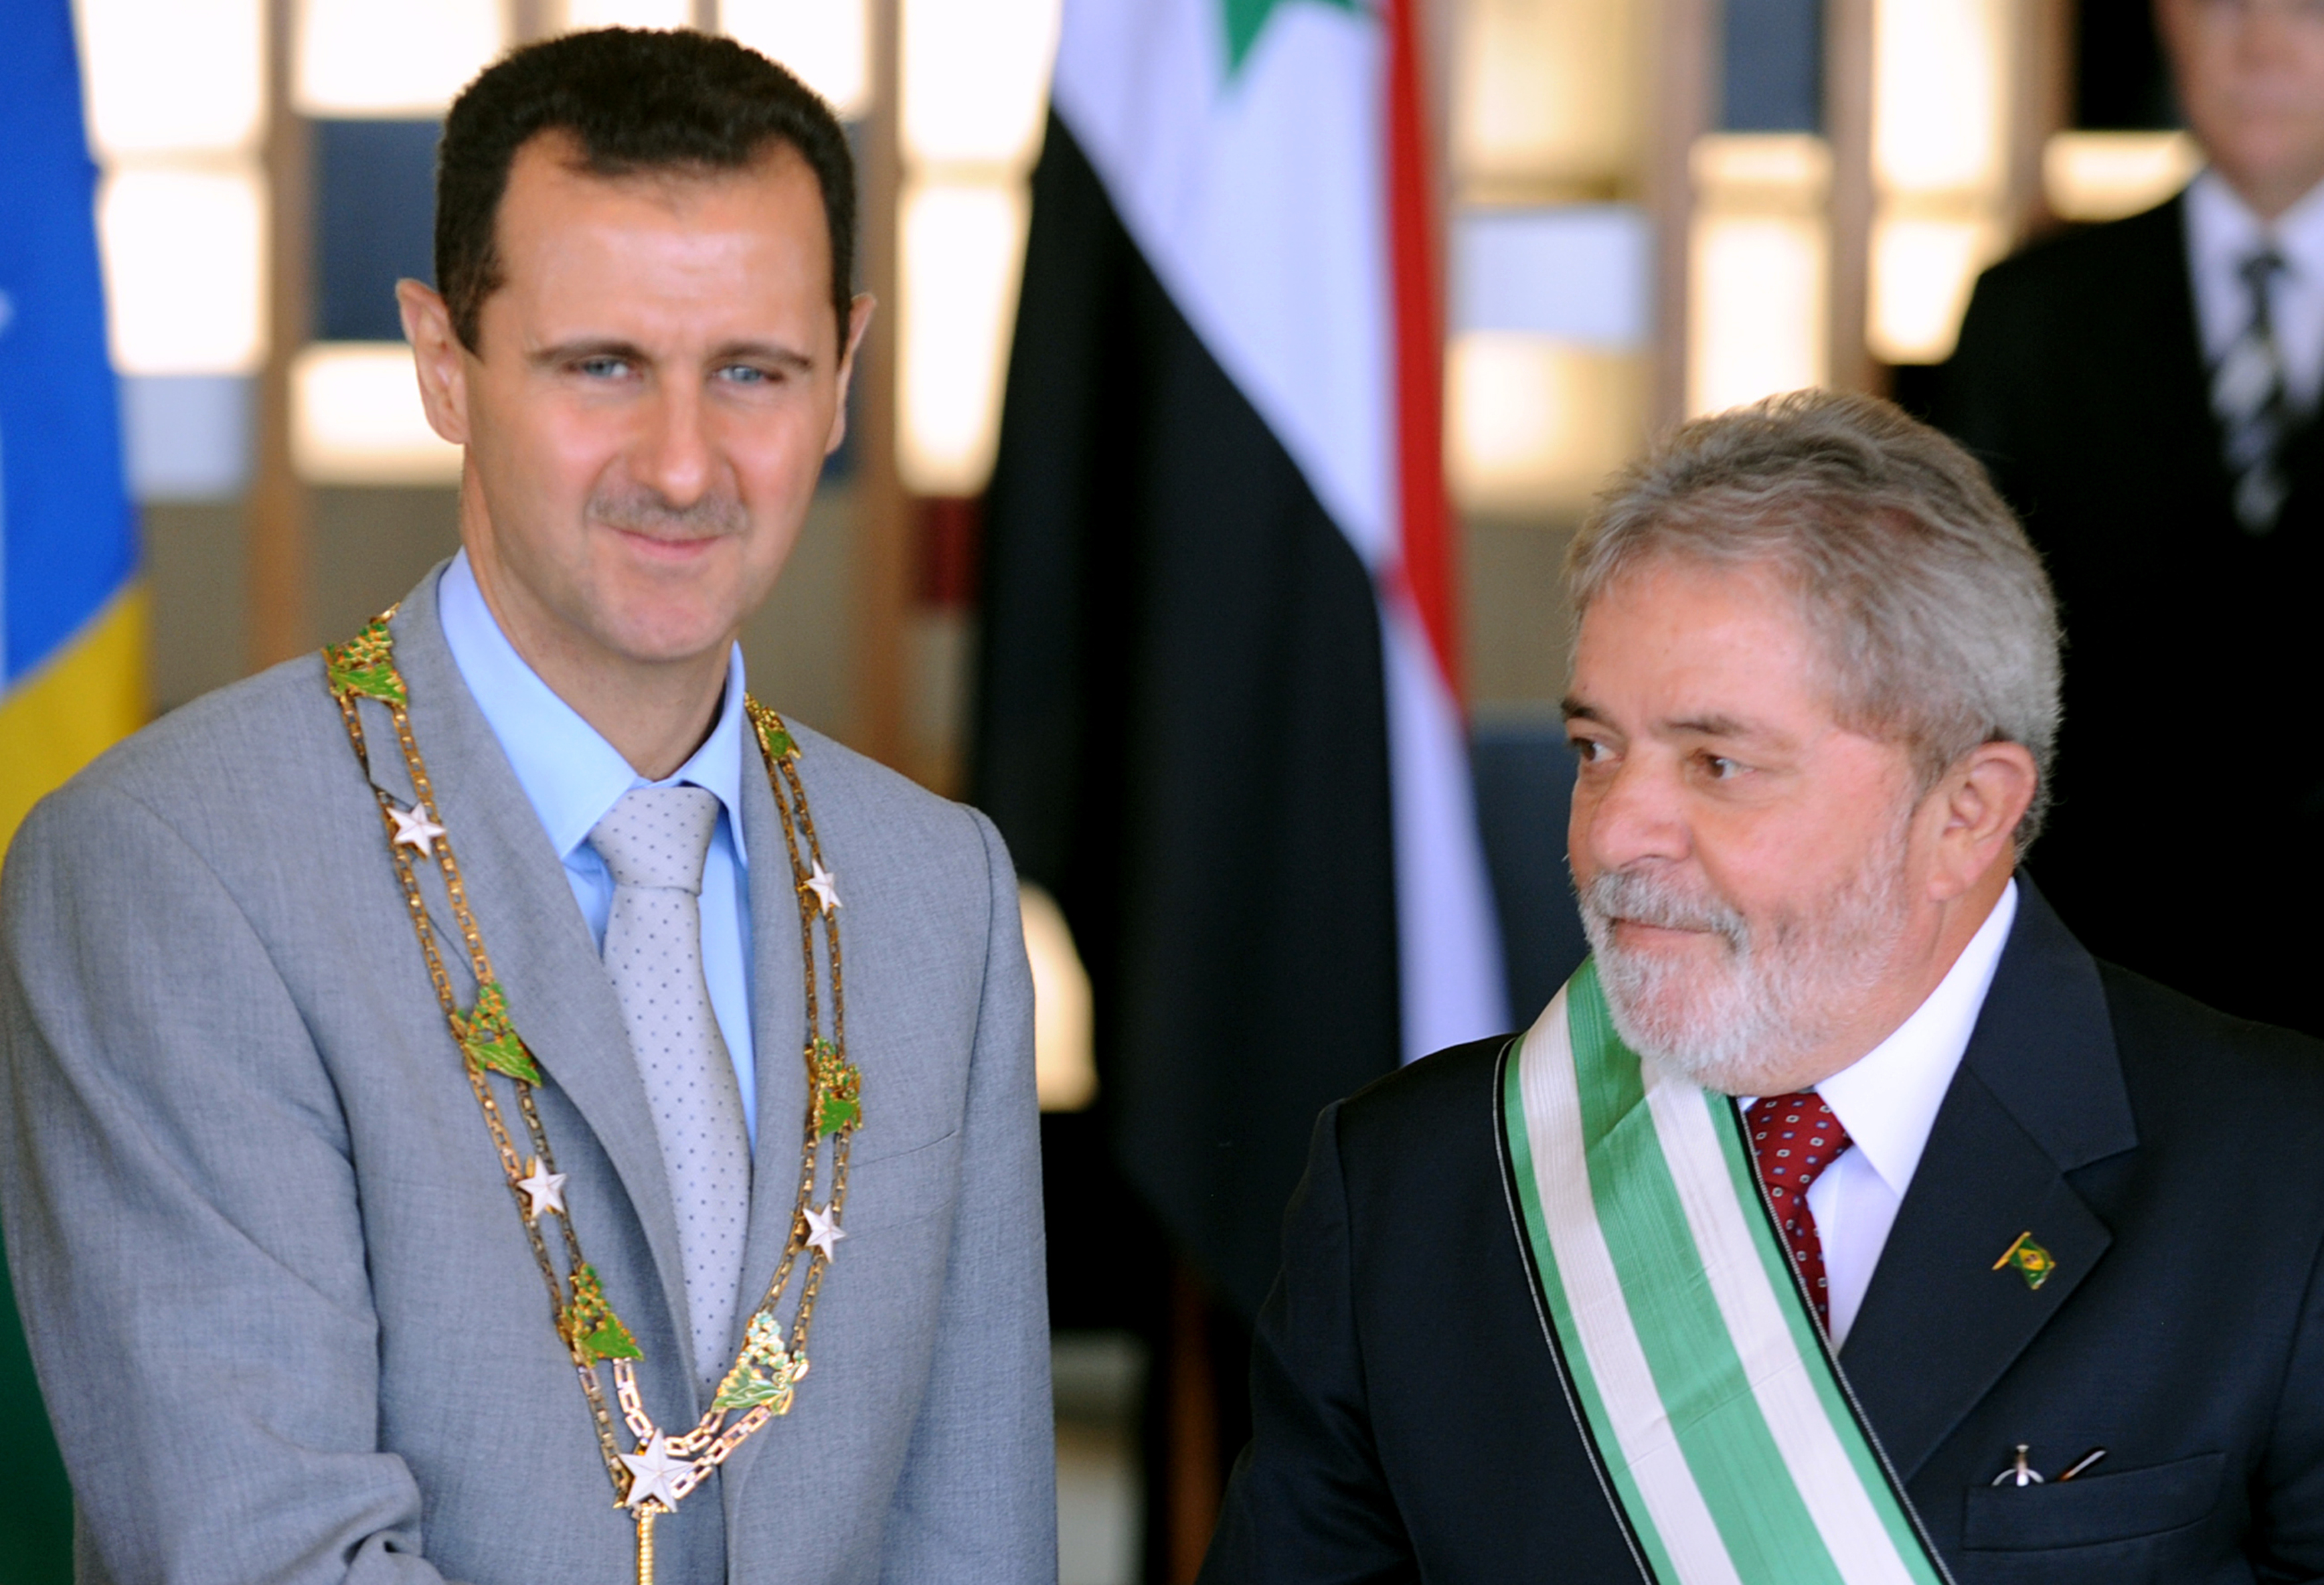 https://upload.wikimedia.org/wikipedia/commons/c/cd/Lula_Al-Assad_Itamaraty_2010.jpg